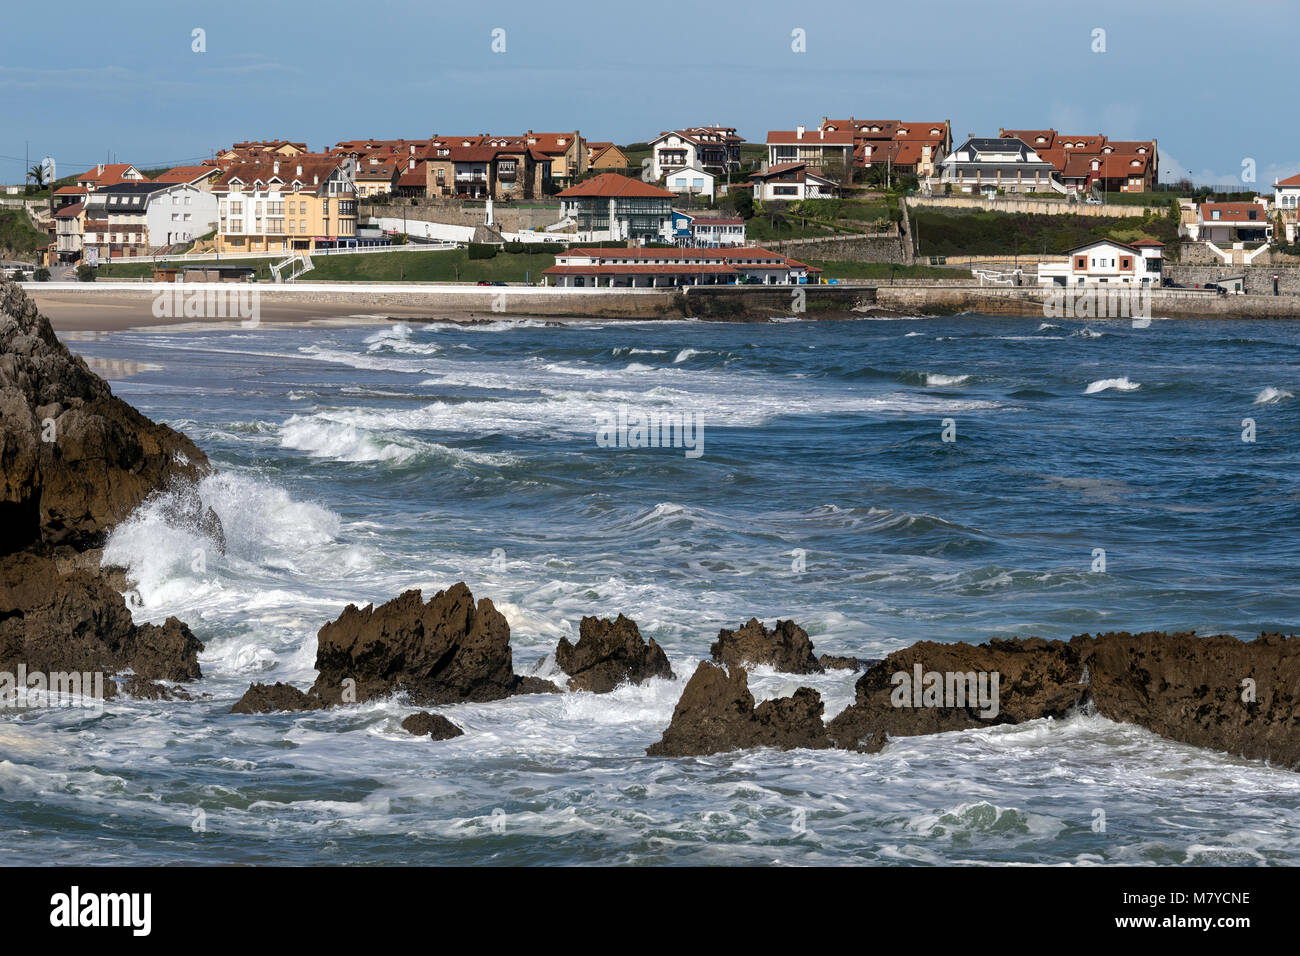 Comillas on the northern coast of Spain. - Stock Image